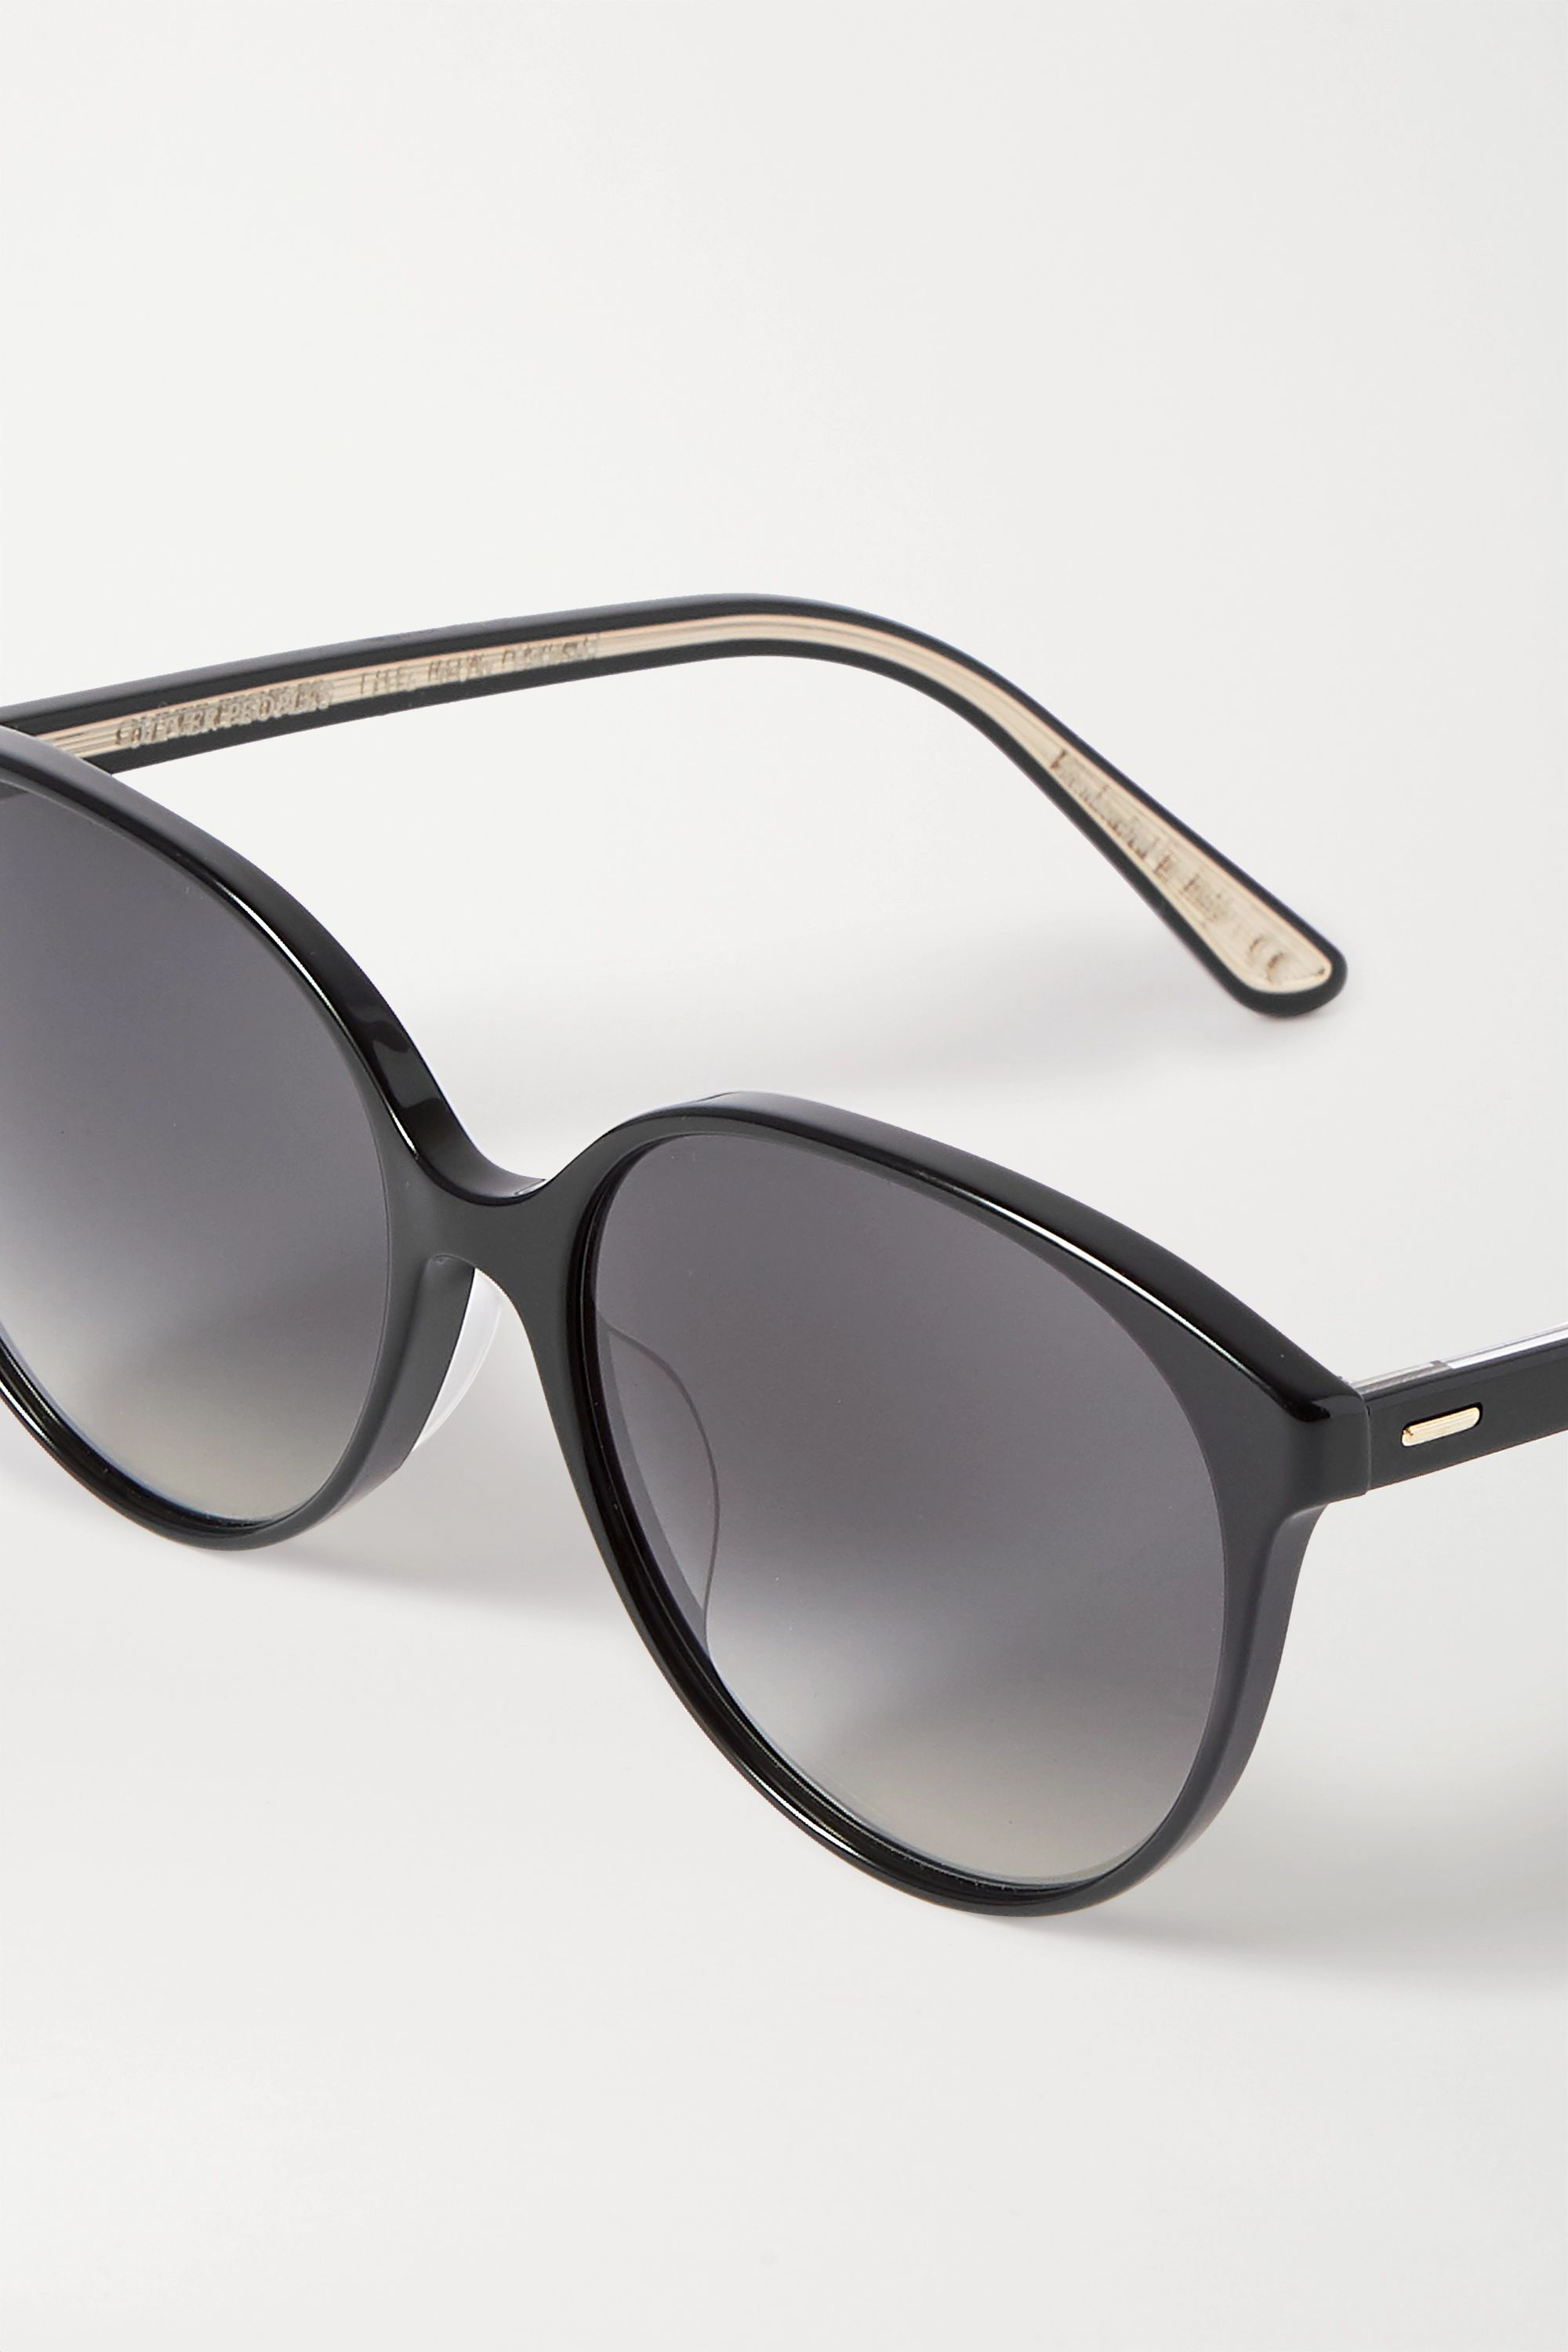 The Row + Oliver Peoples Brooktree round-frame acetate sunglasses